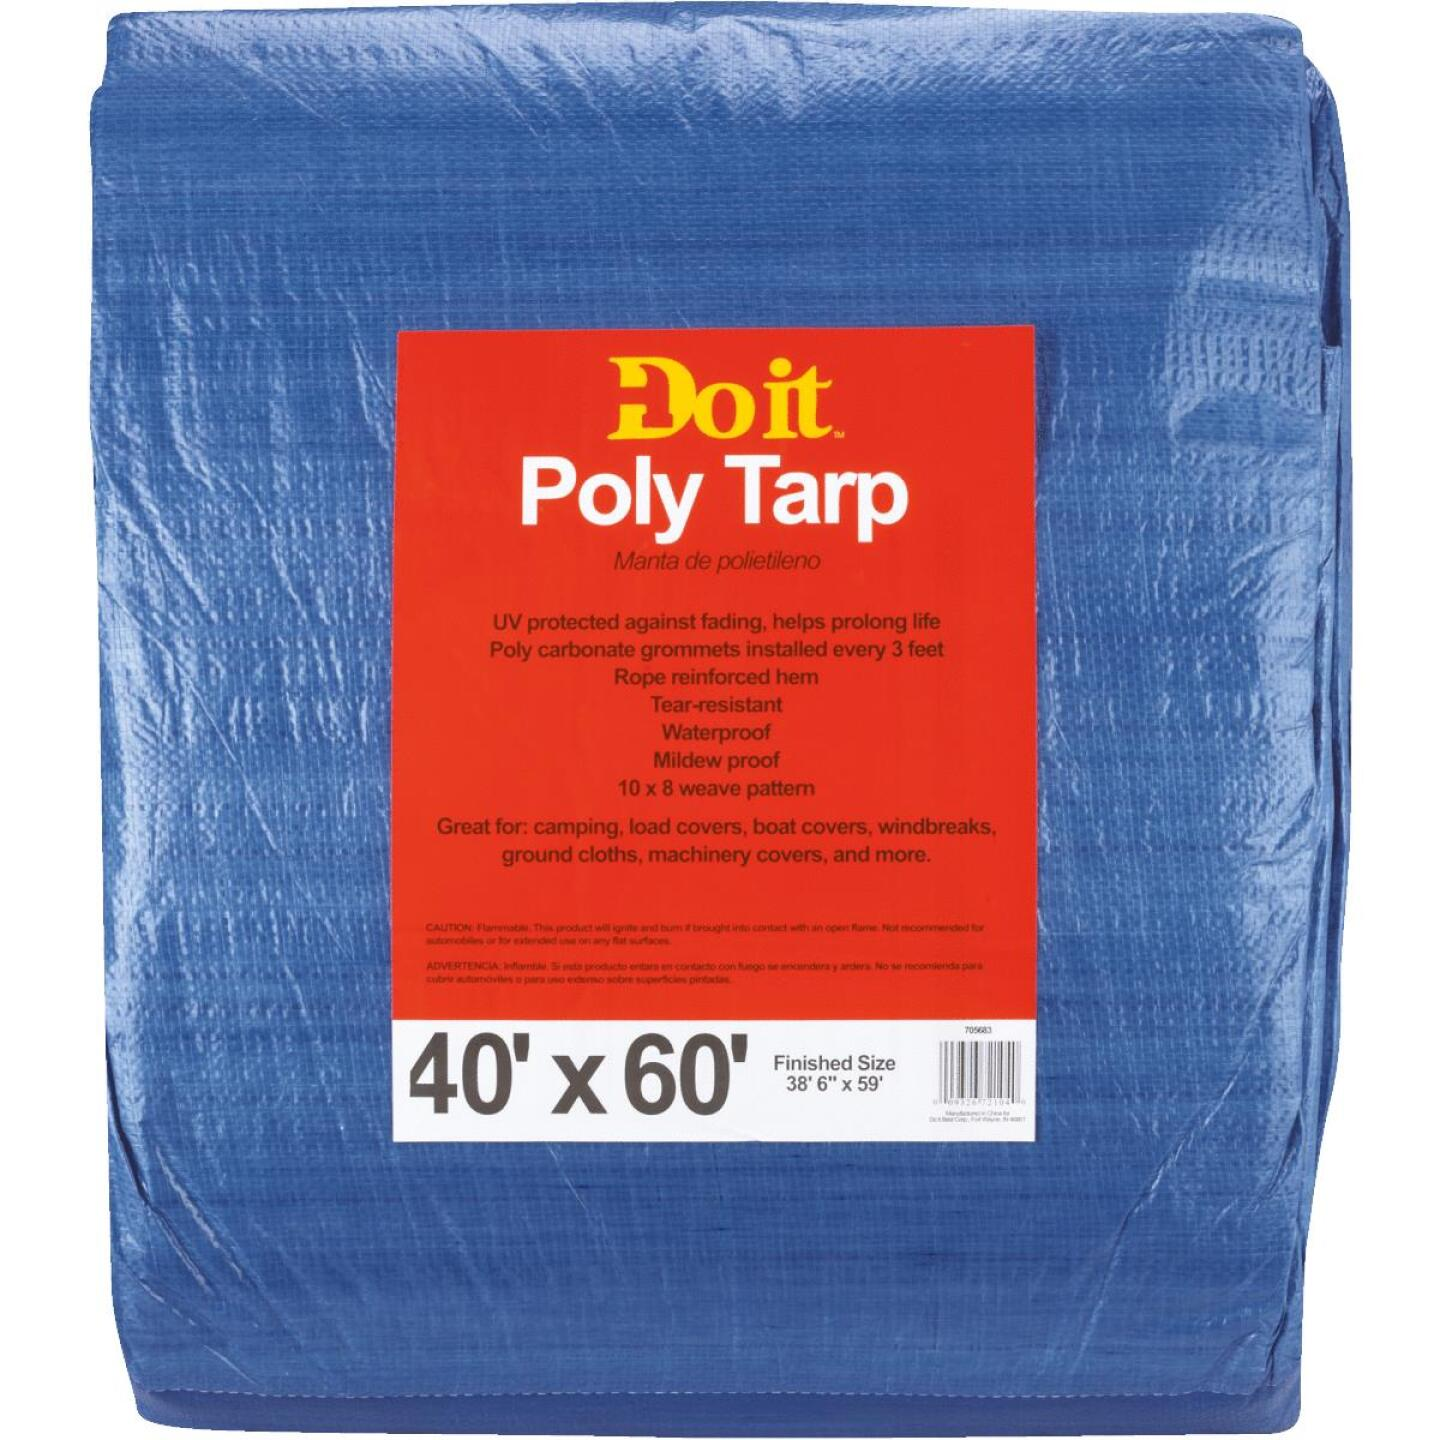 Do it Blue Woven 40 Ft. x 60 Ft. Medium Duty Poly Tarp Image 3